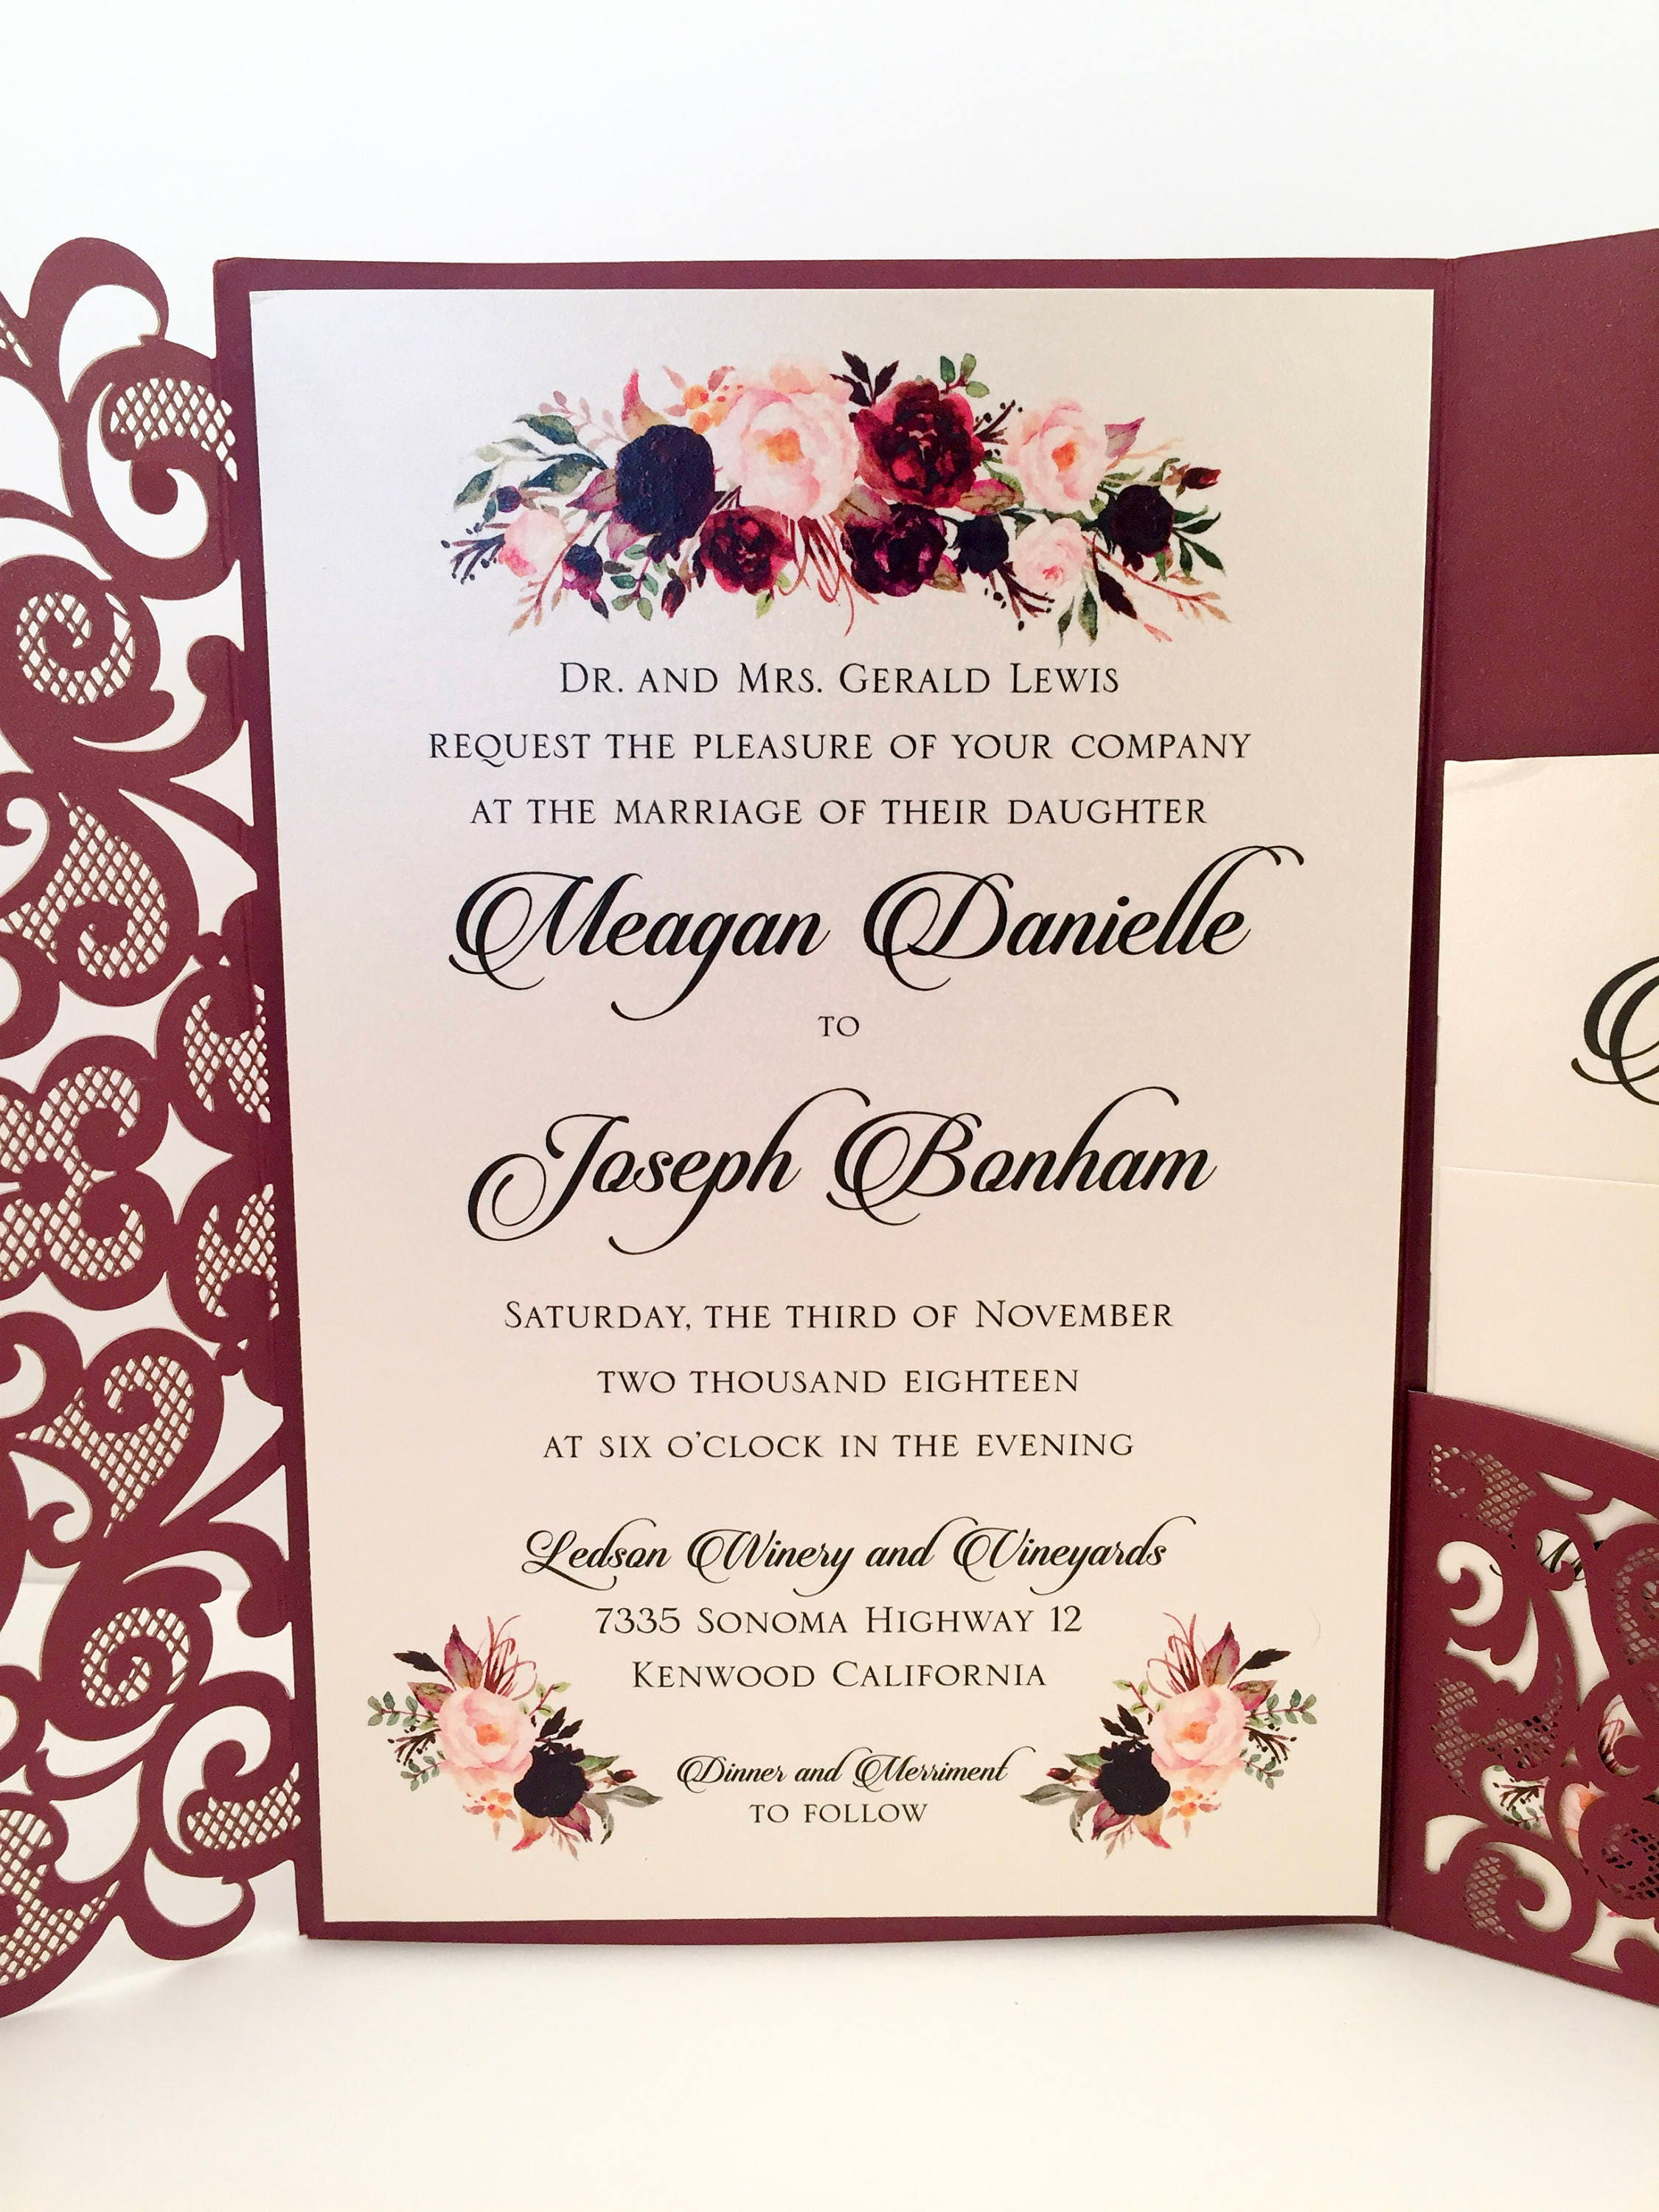 Laser cut wedding invitations marsala burgundy pocket wedding laser cut wedding invitations marsala burgundy pocket wedding invitations die cut laser cut jackets gold wedding stopboris Choice Image